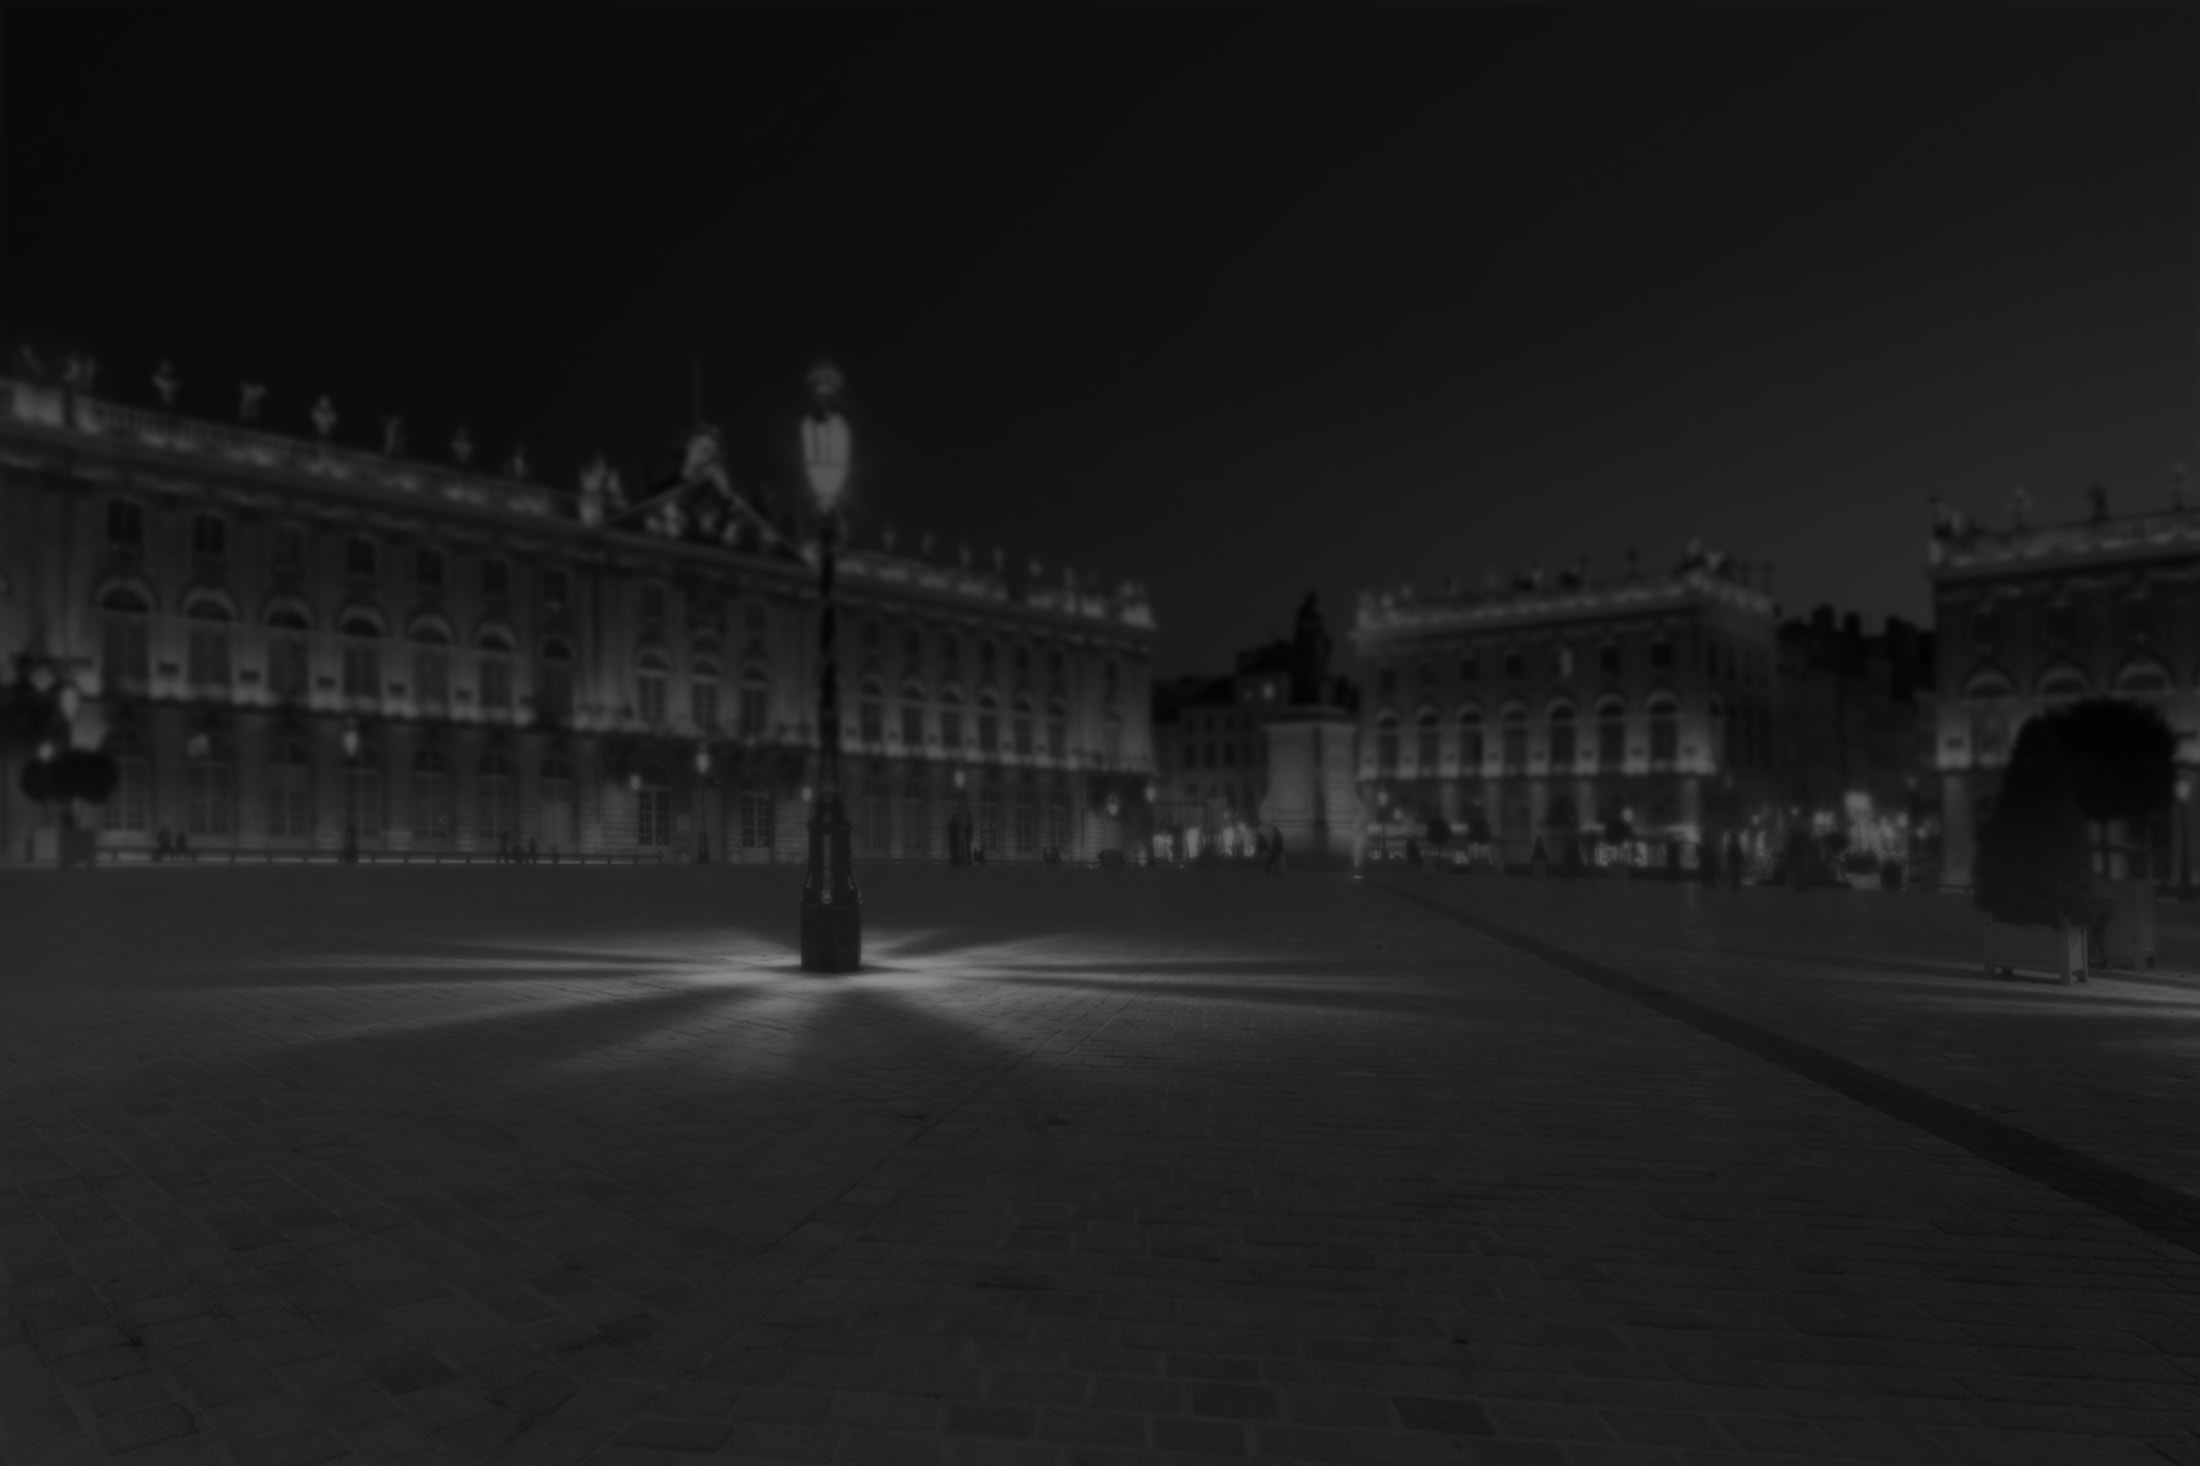 photo de la place Stanislas en noir et blanc